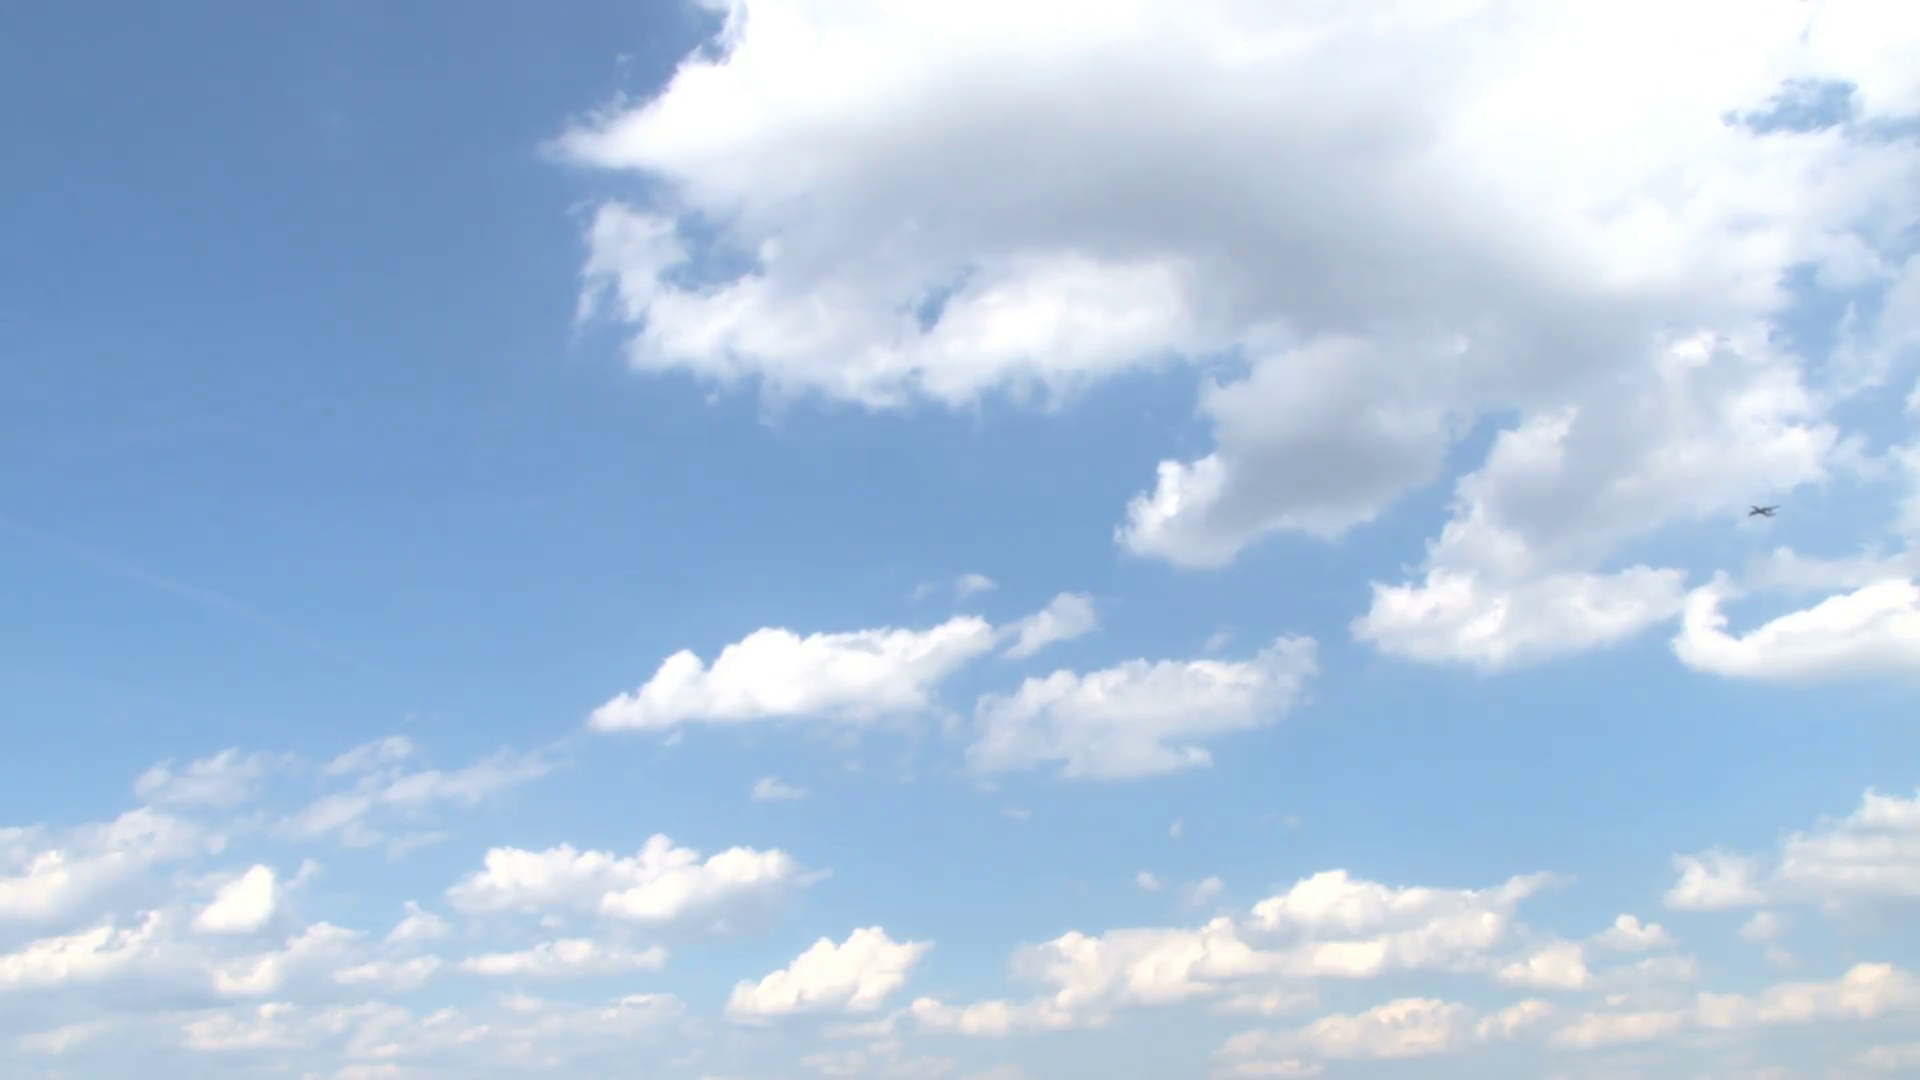 Plane Flying Across Partly Cloudy Sky Stock Video Footage - VideoBlocks